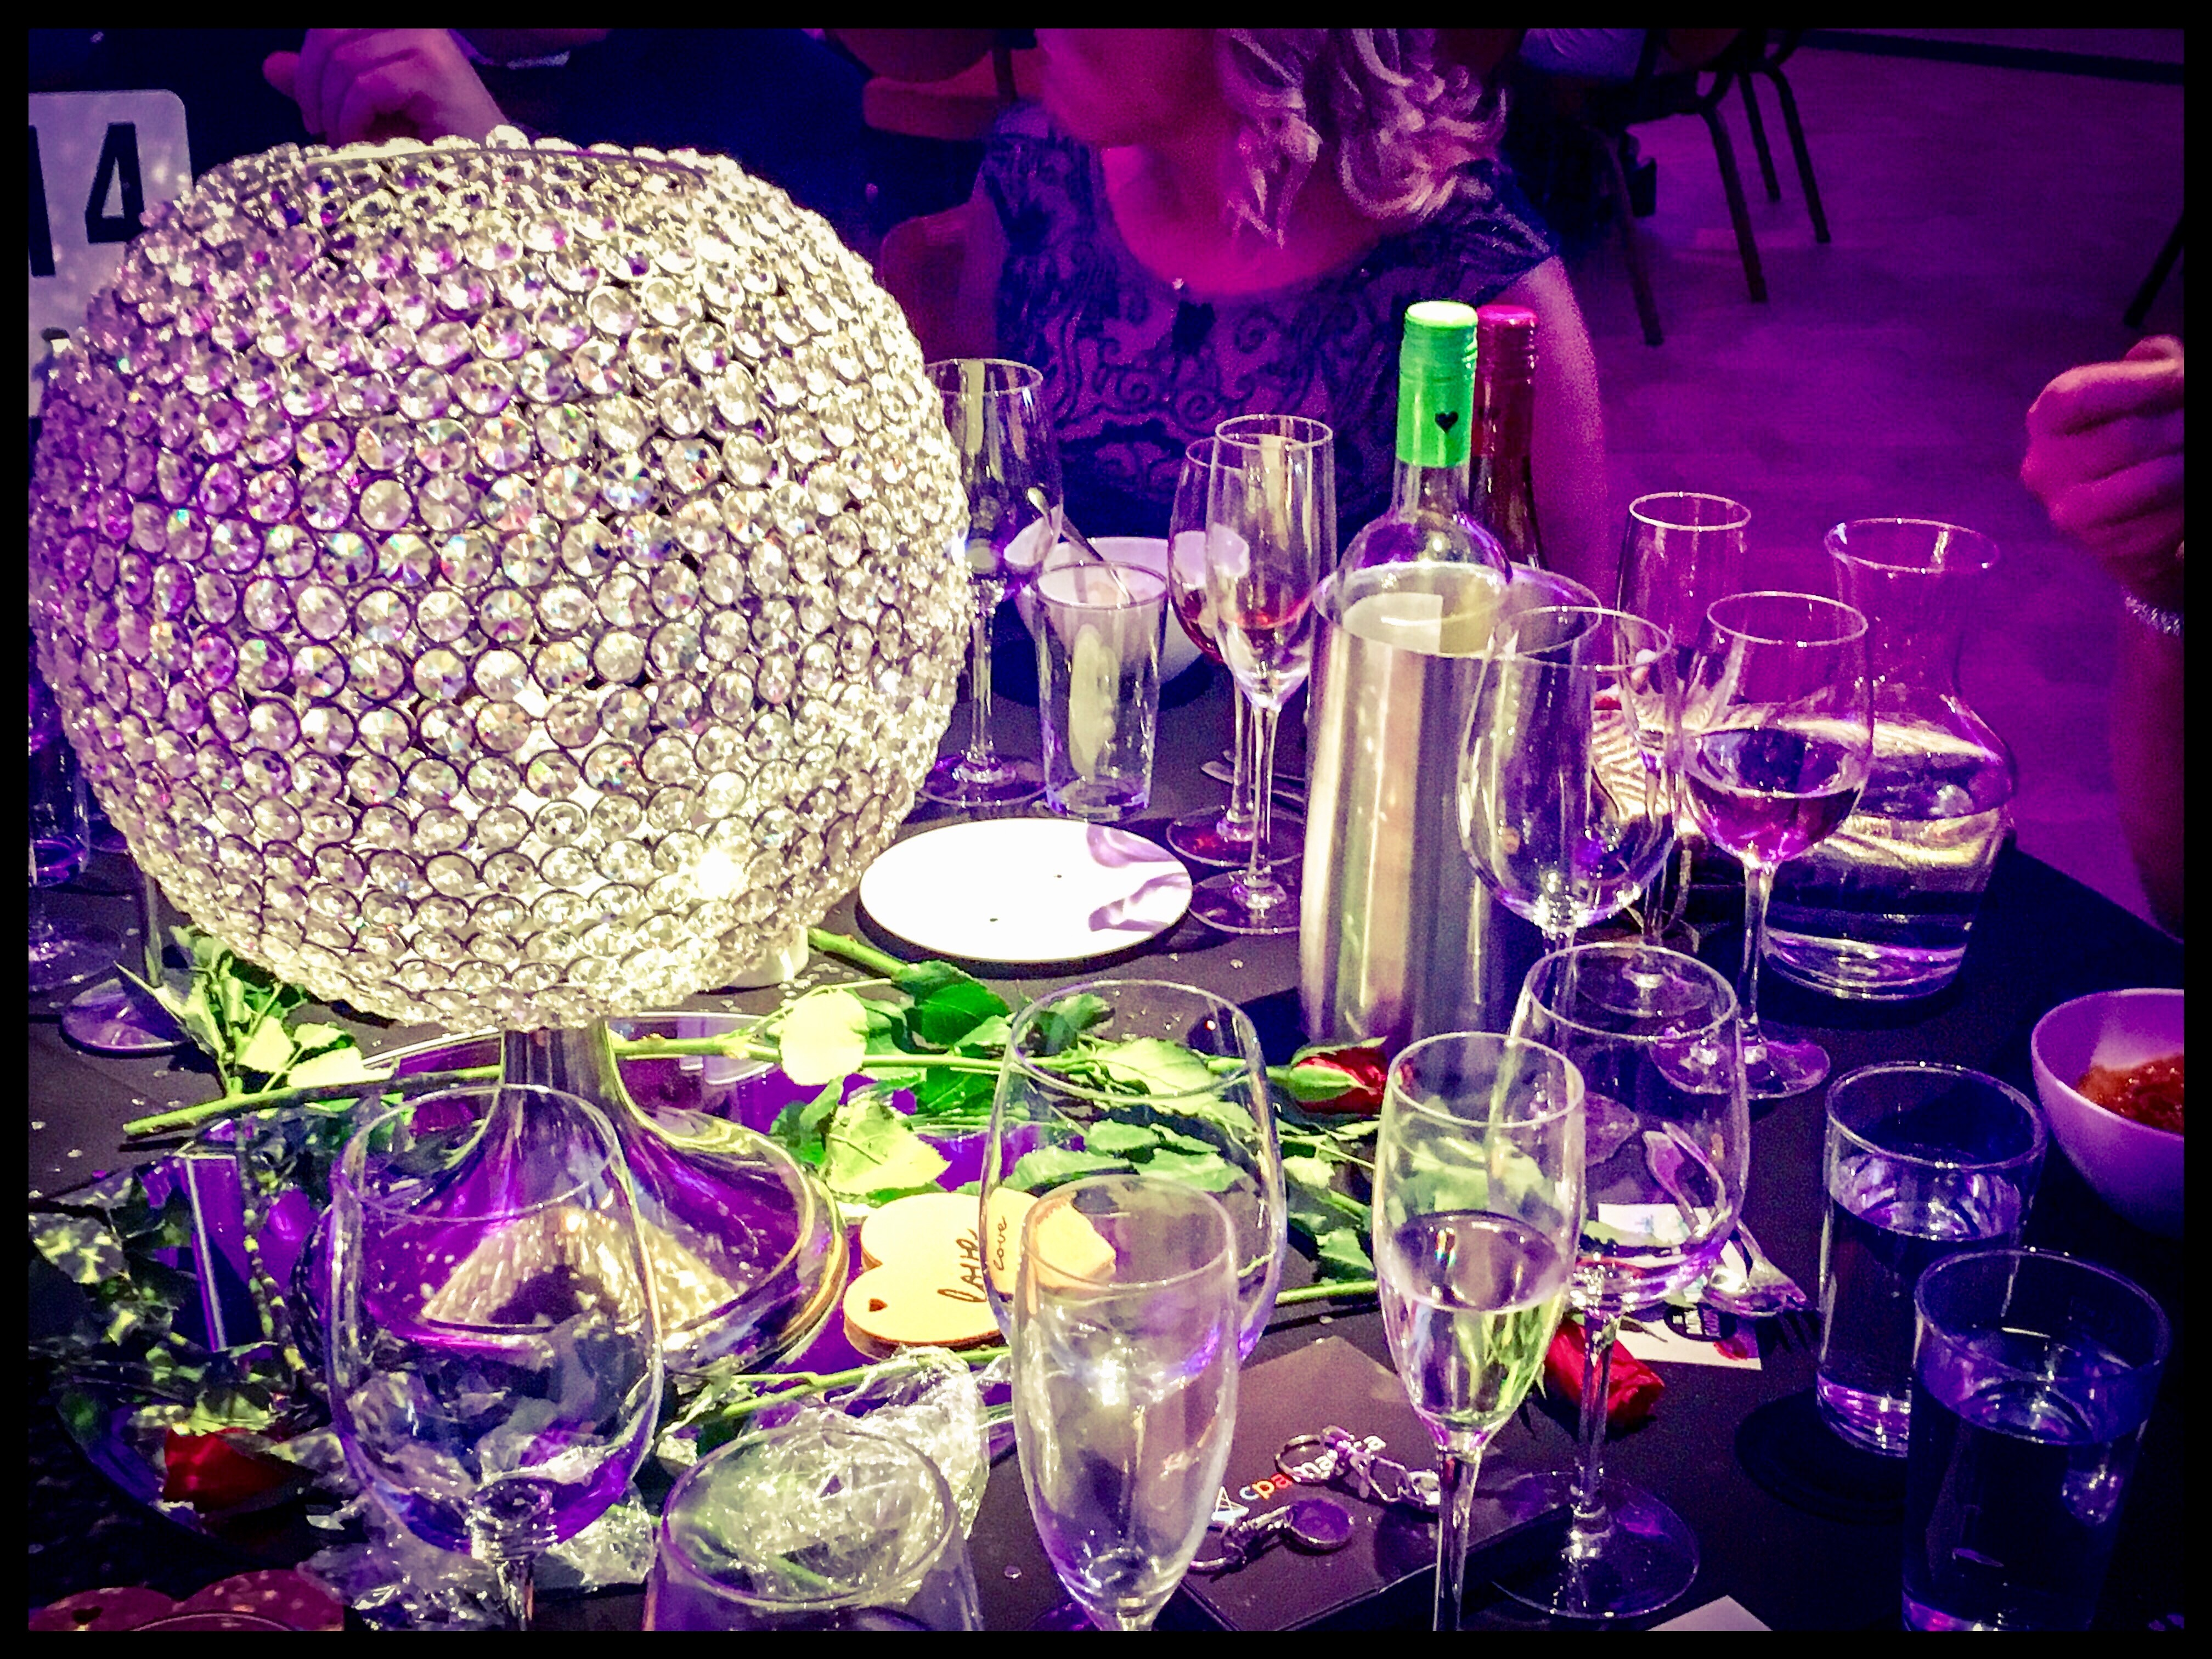 Glitter ball and hearts and flowers on the table